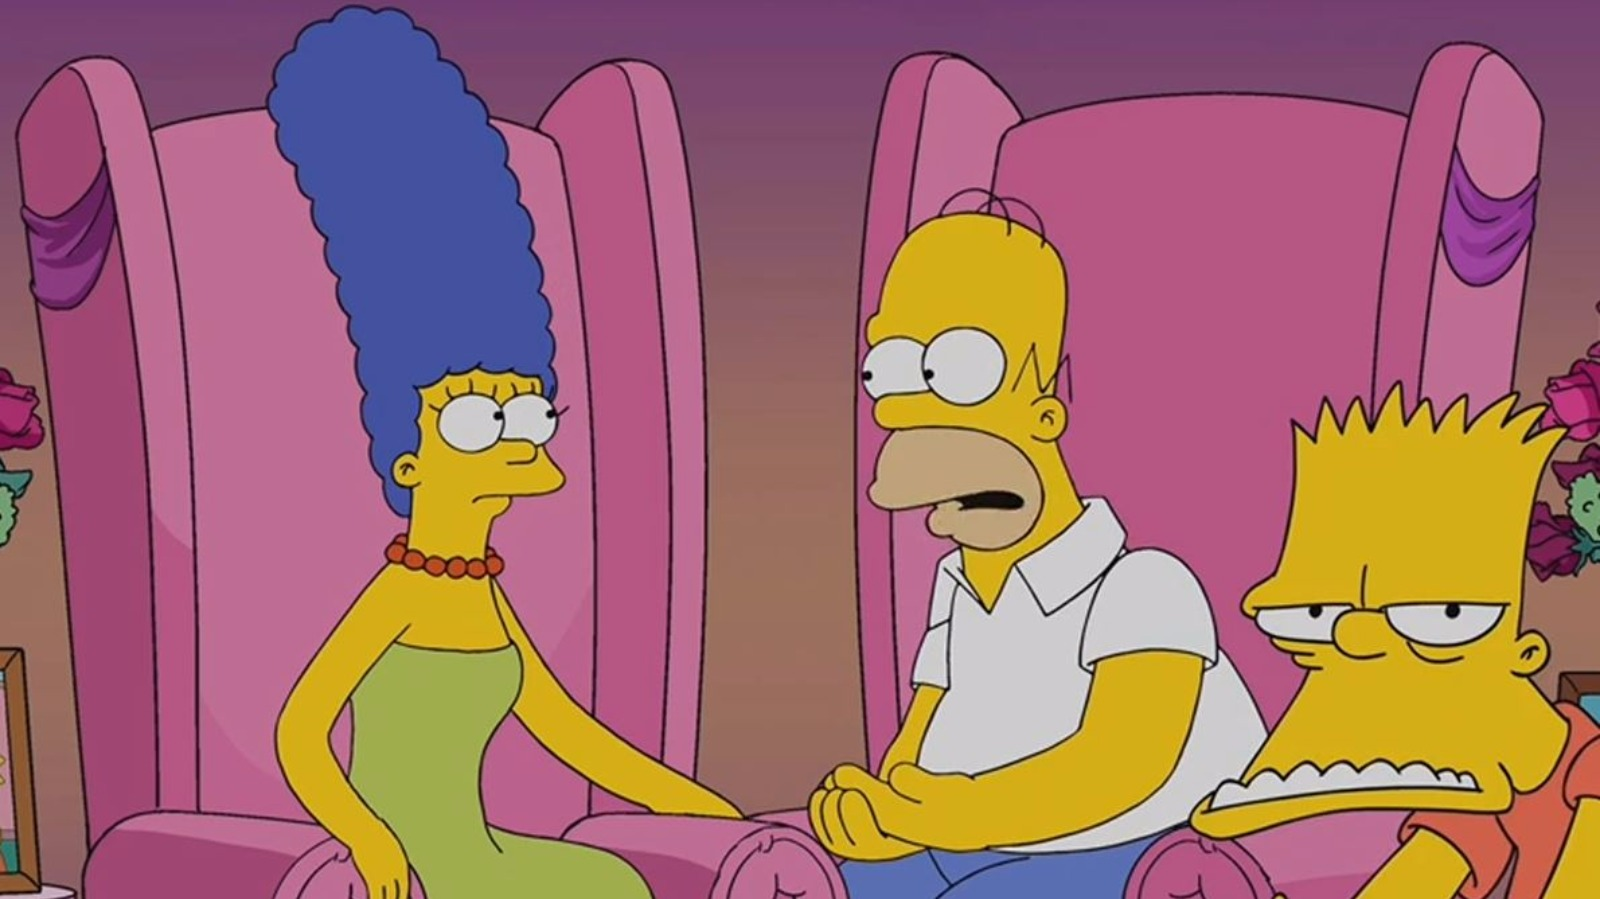 The Simpsons issue 'official' denial that Homer and Marge ... Harry Shearer Simpsons